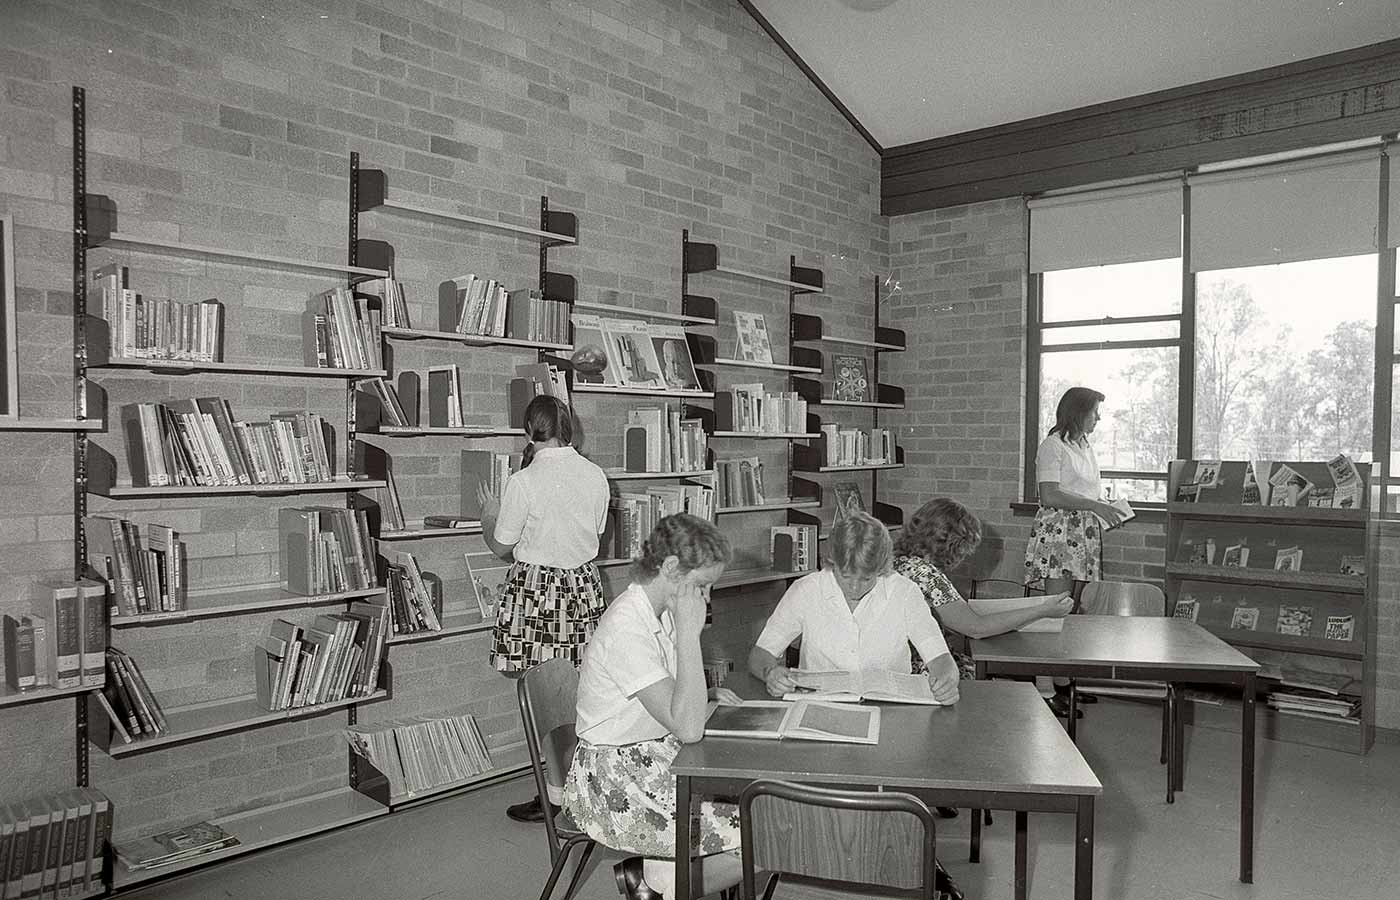 Black and white photo showing five teenage girls in a library. Three sit at tables, reading. Another girl browses at books on a shelf on the rear wall. A fifth girl stands looking out a window. - click to view larger image